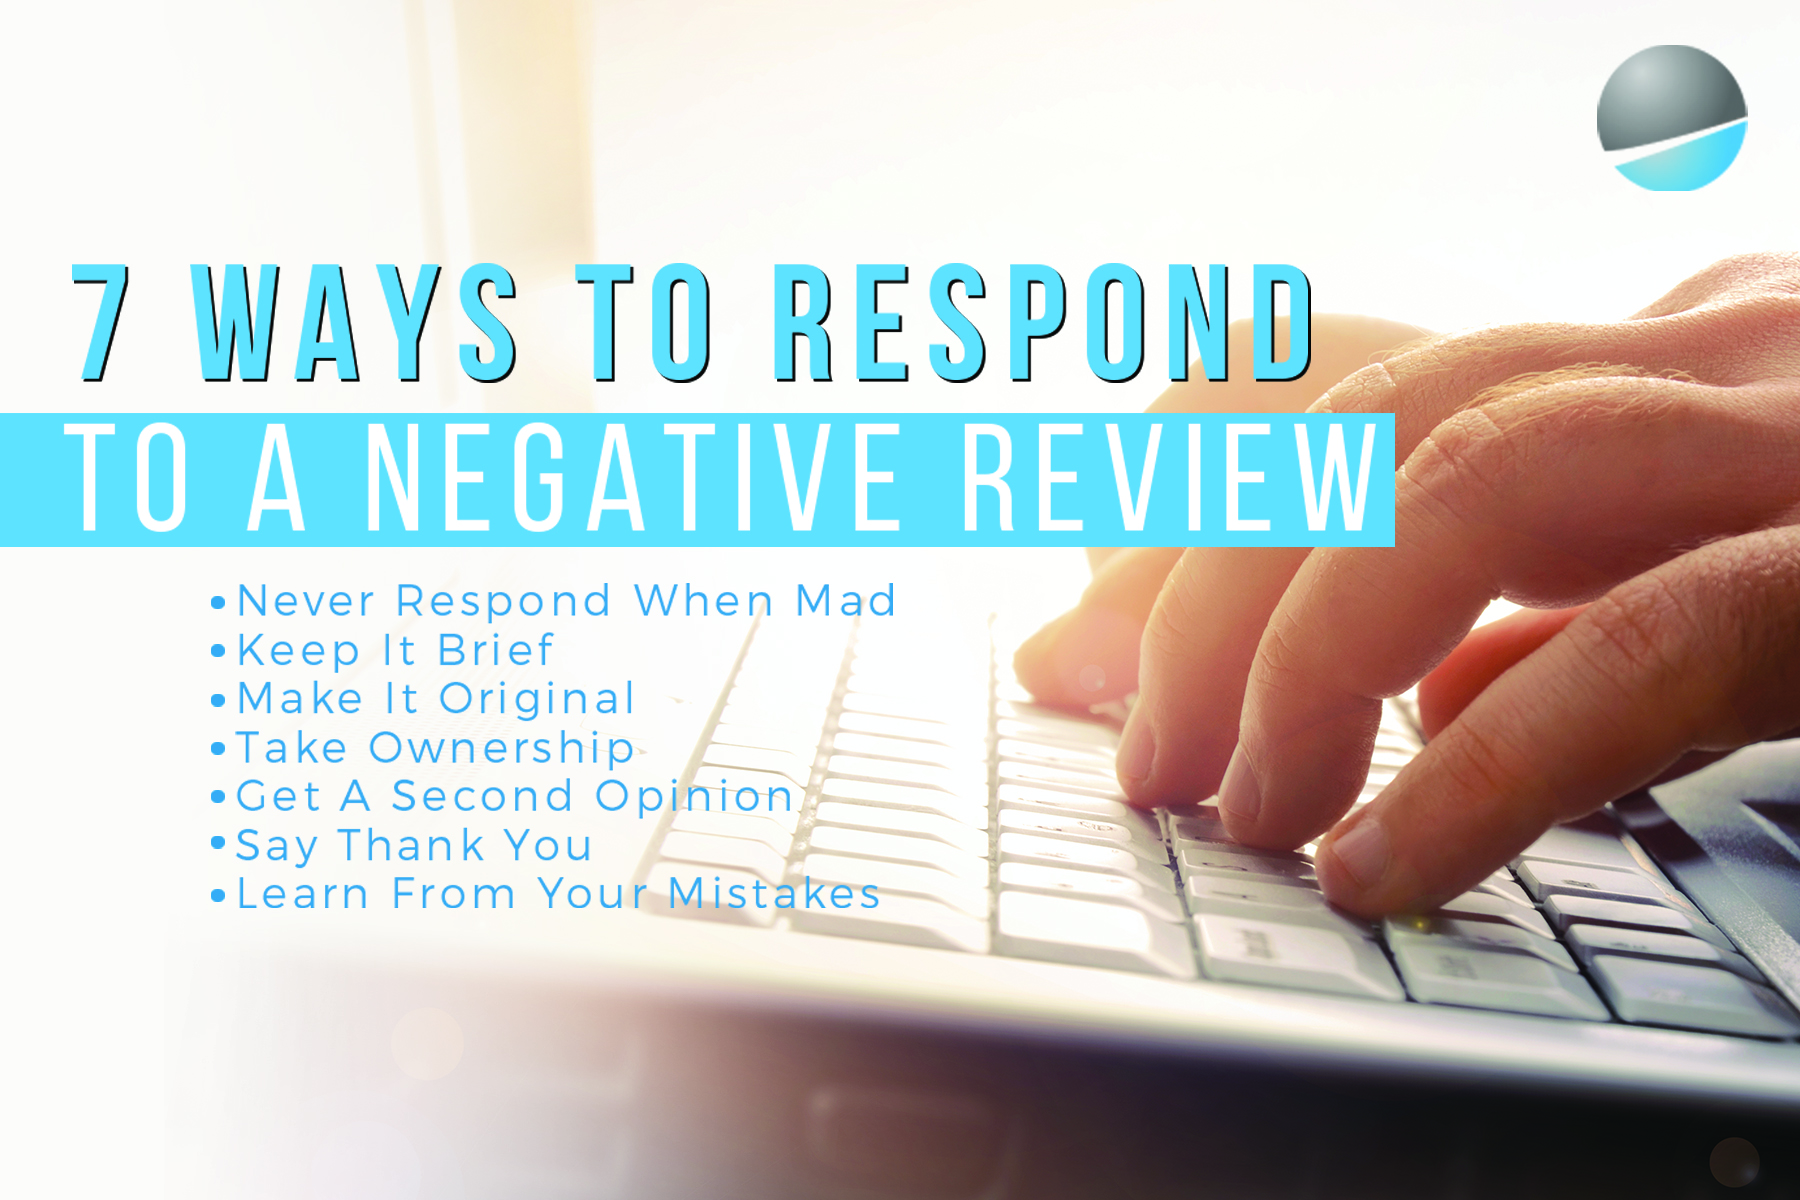 7 Ways to Respond to a Negative Review